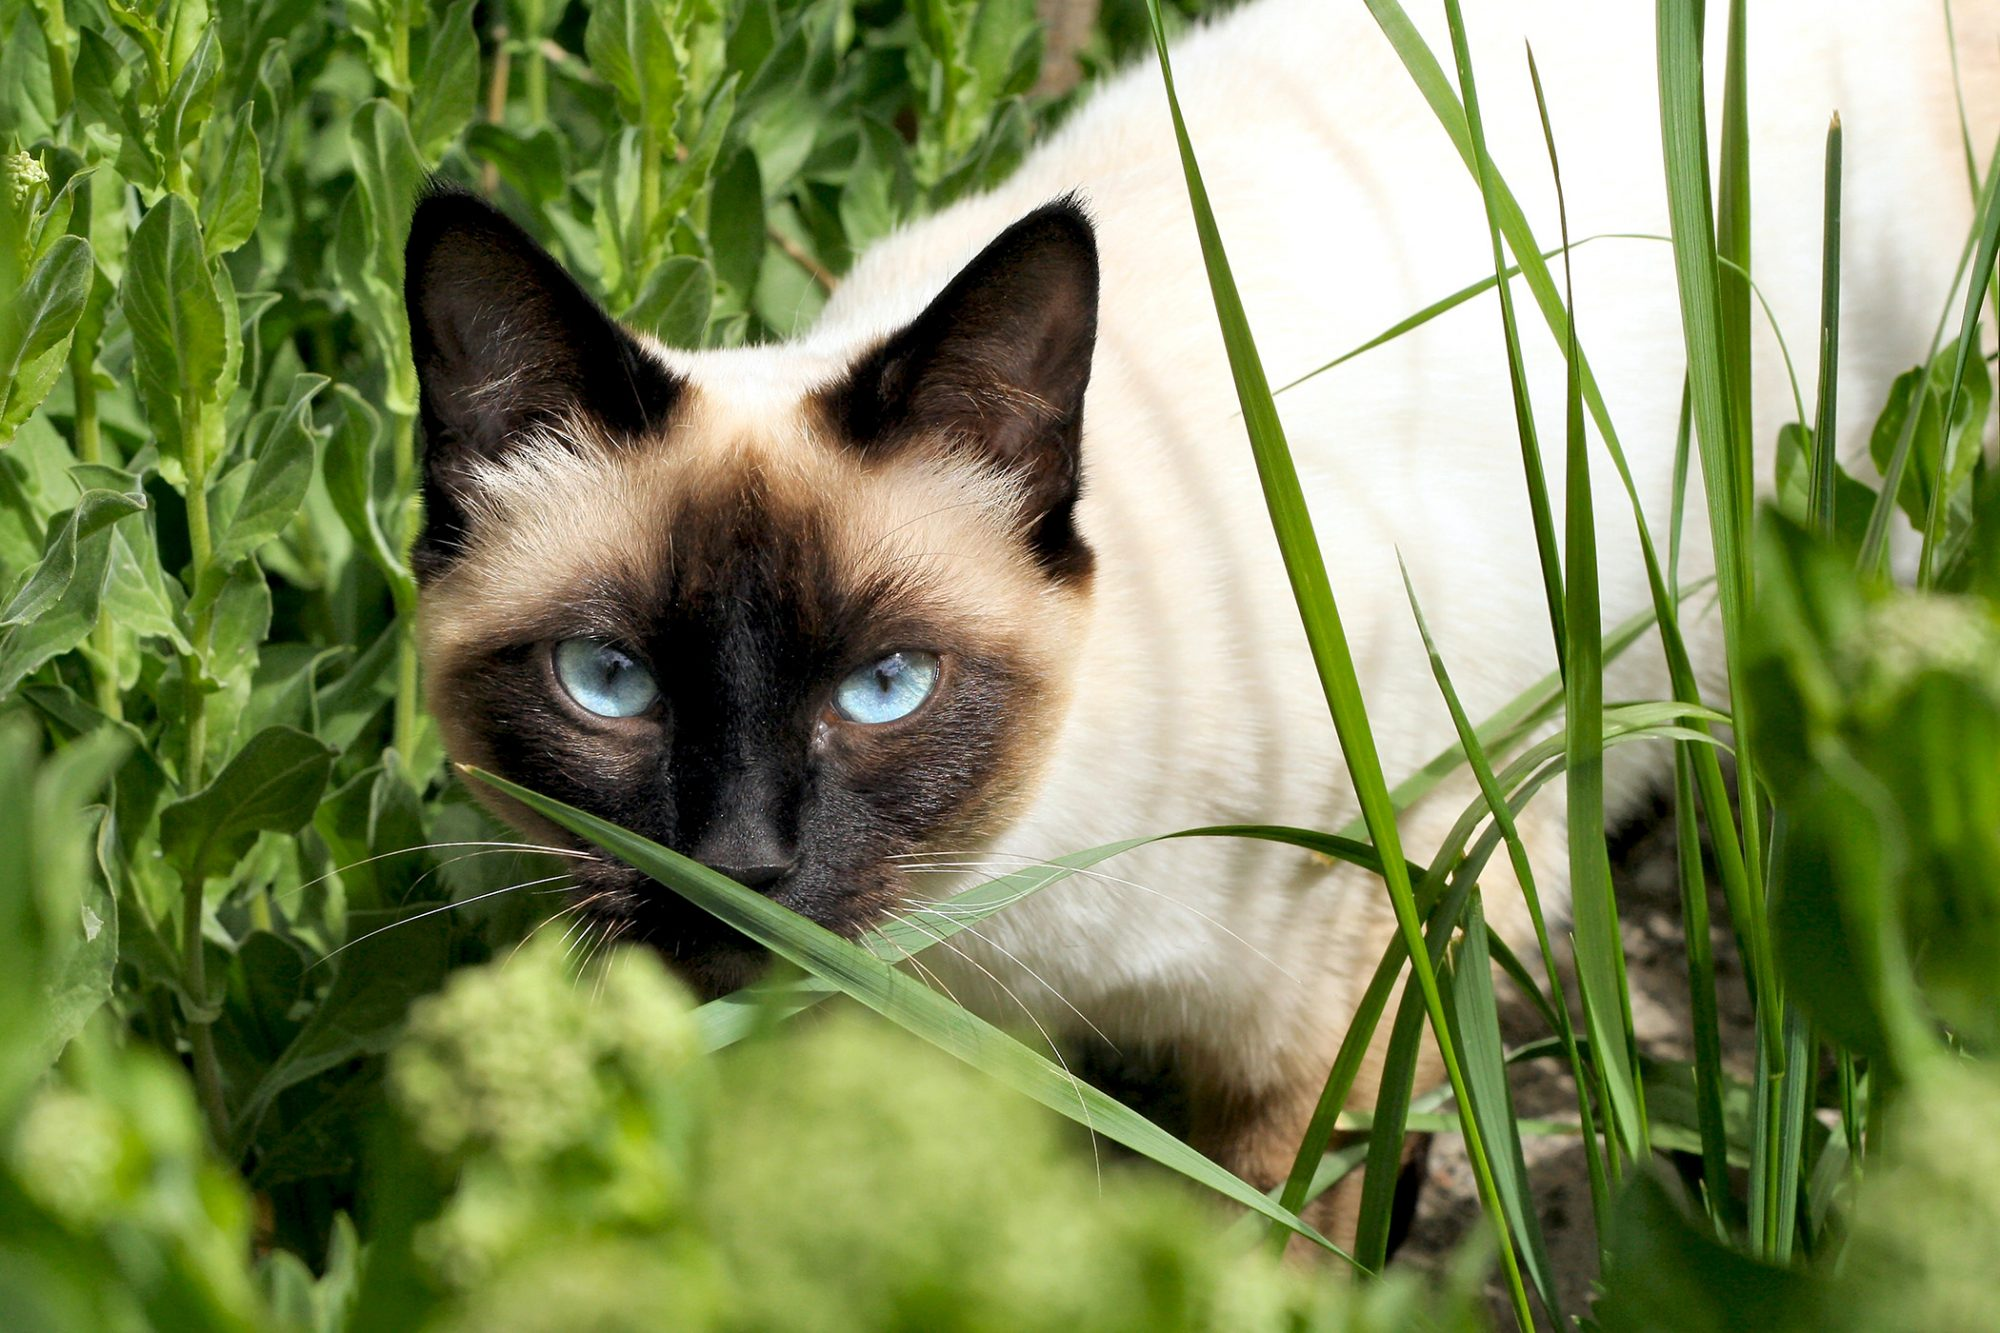 Siamese cat crouches in grass